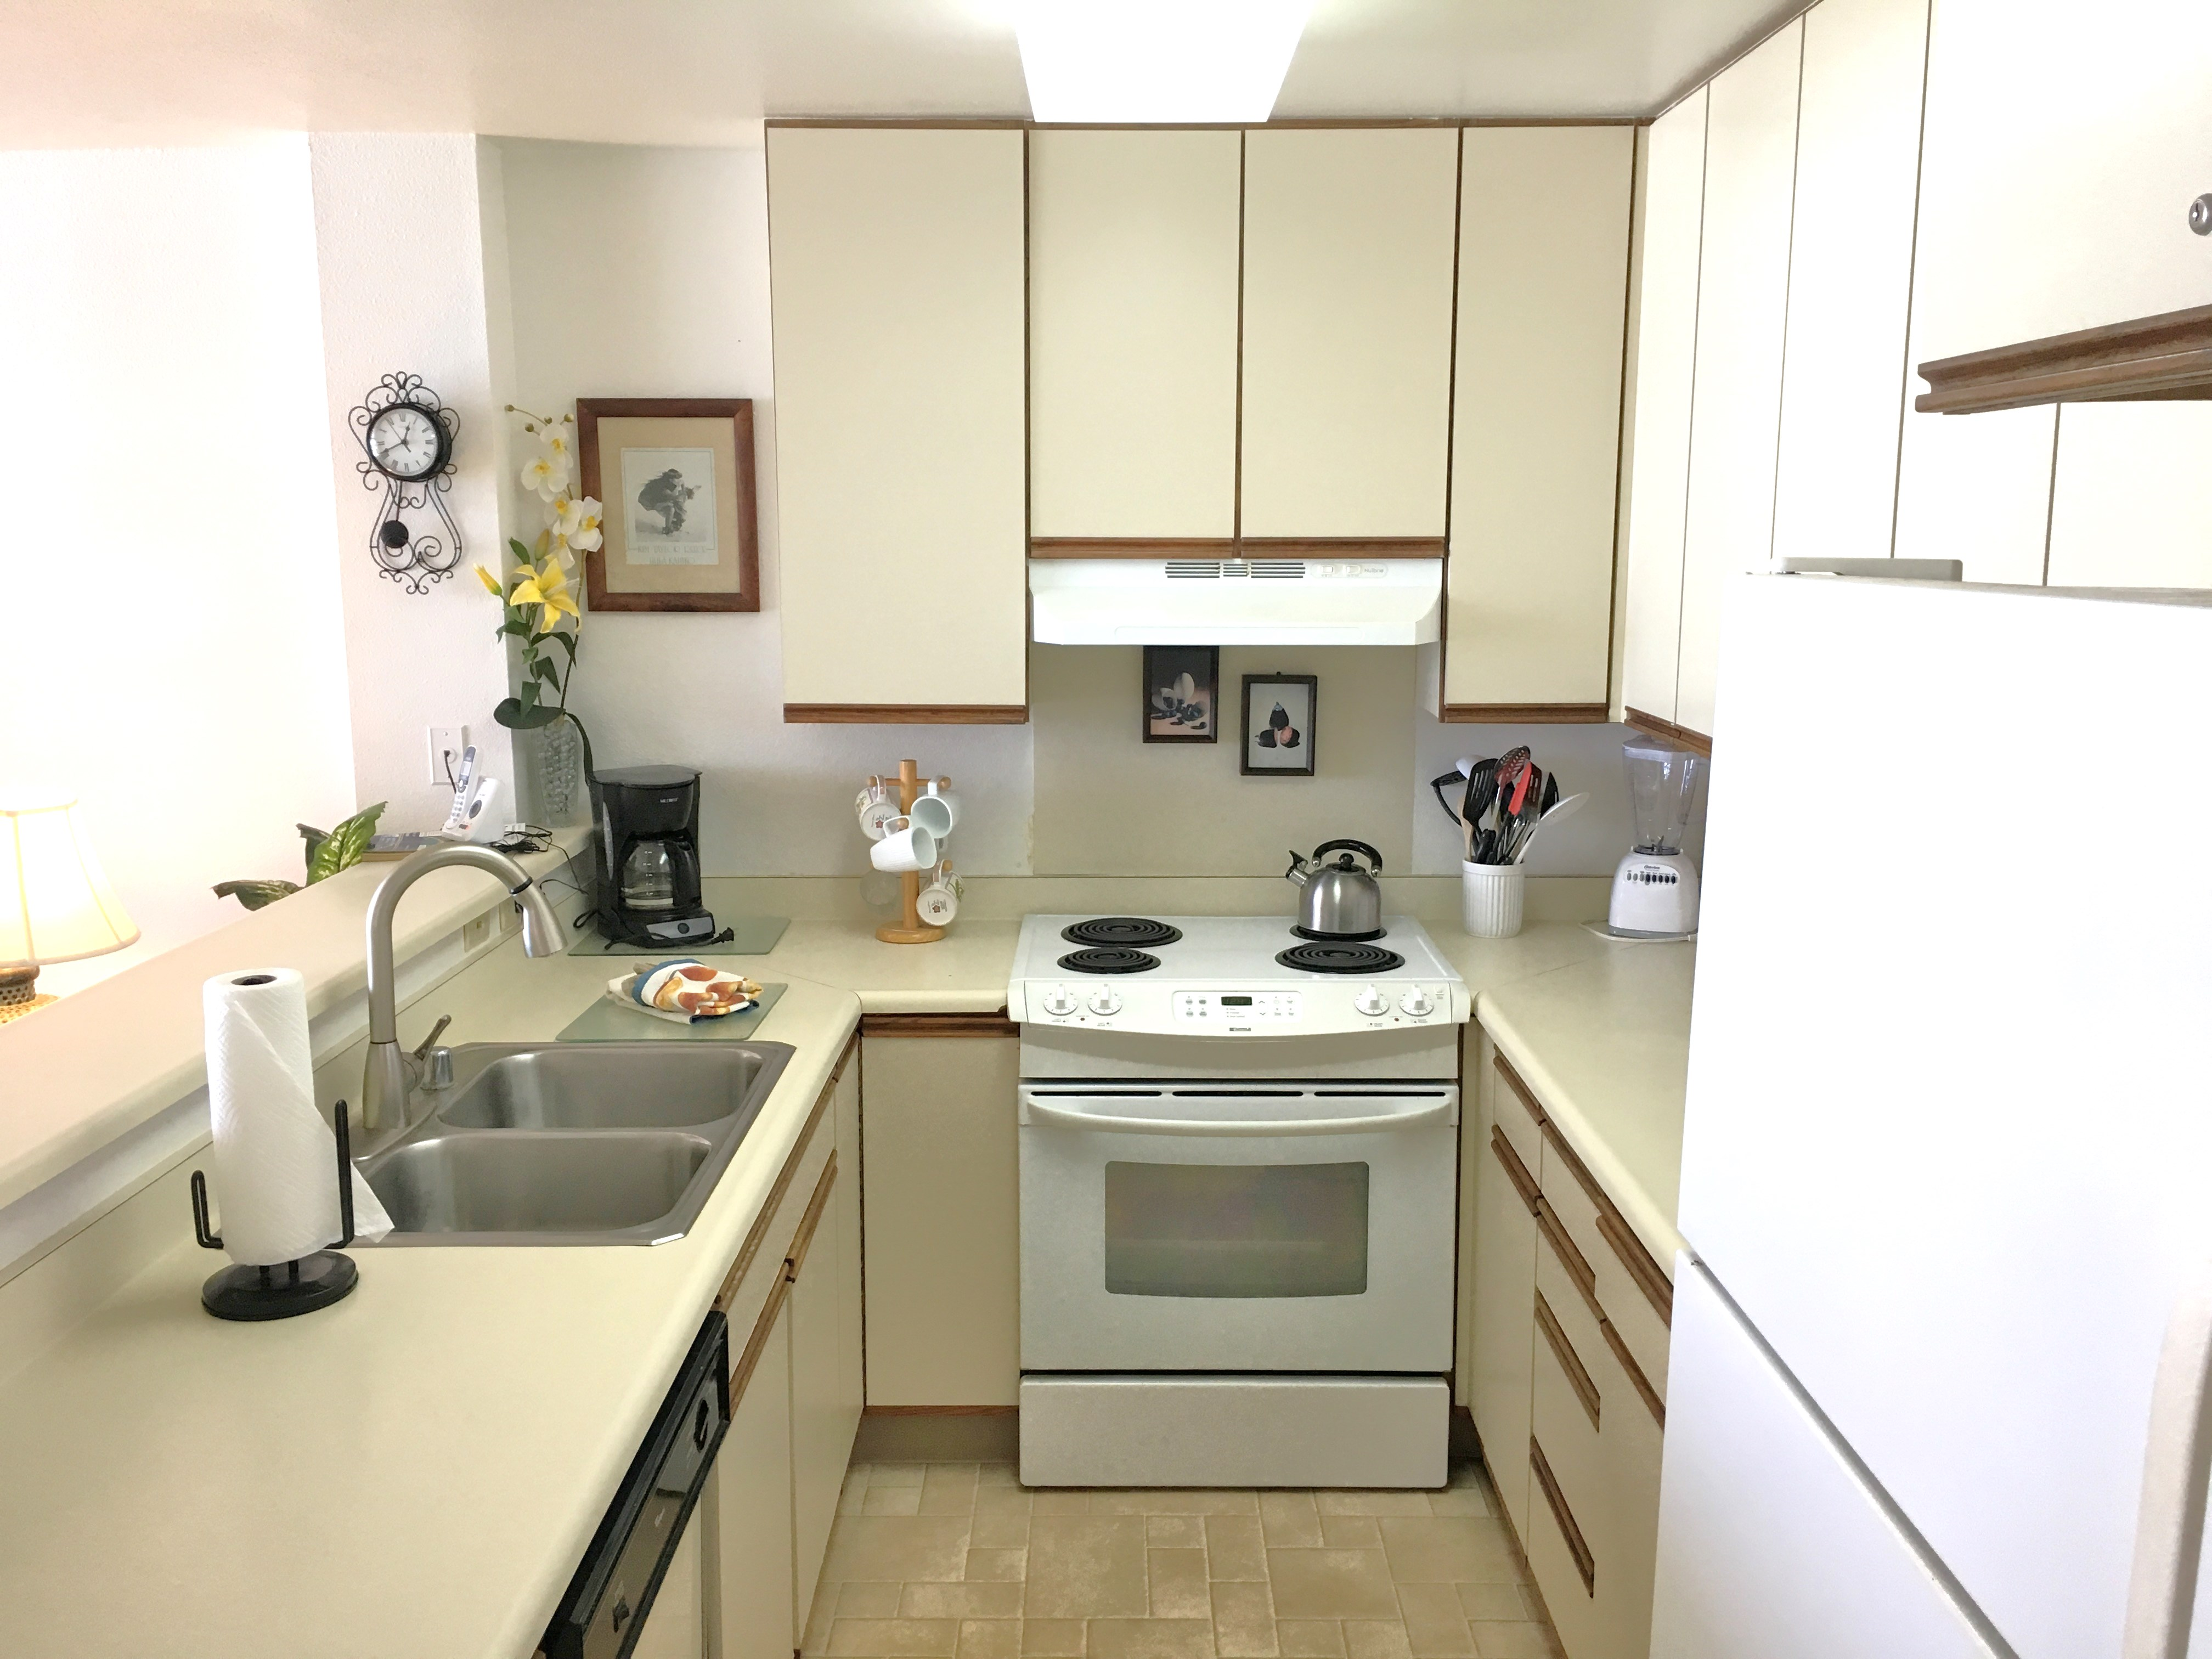 Kitchen in Wailua Bay View vacation rental